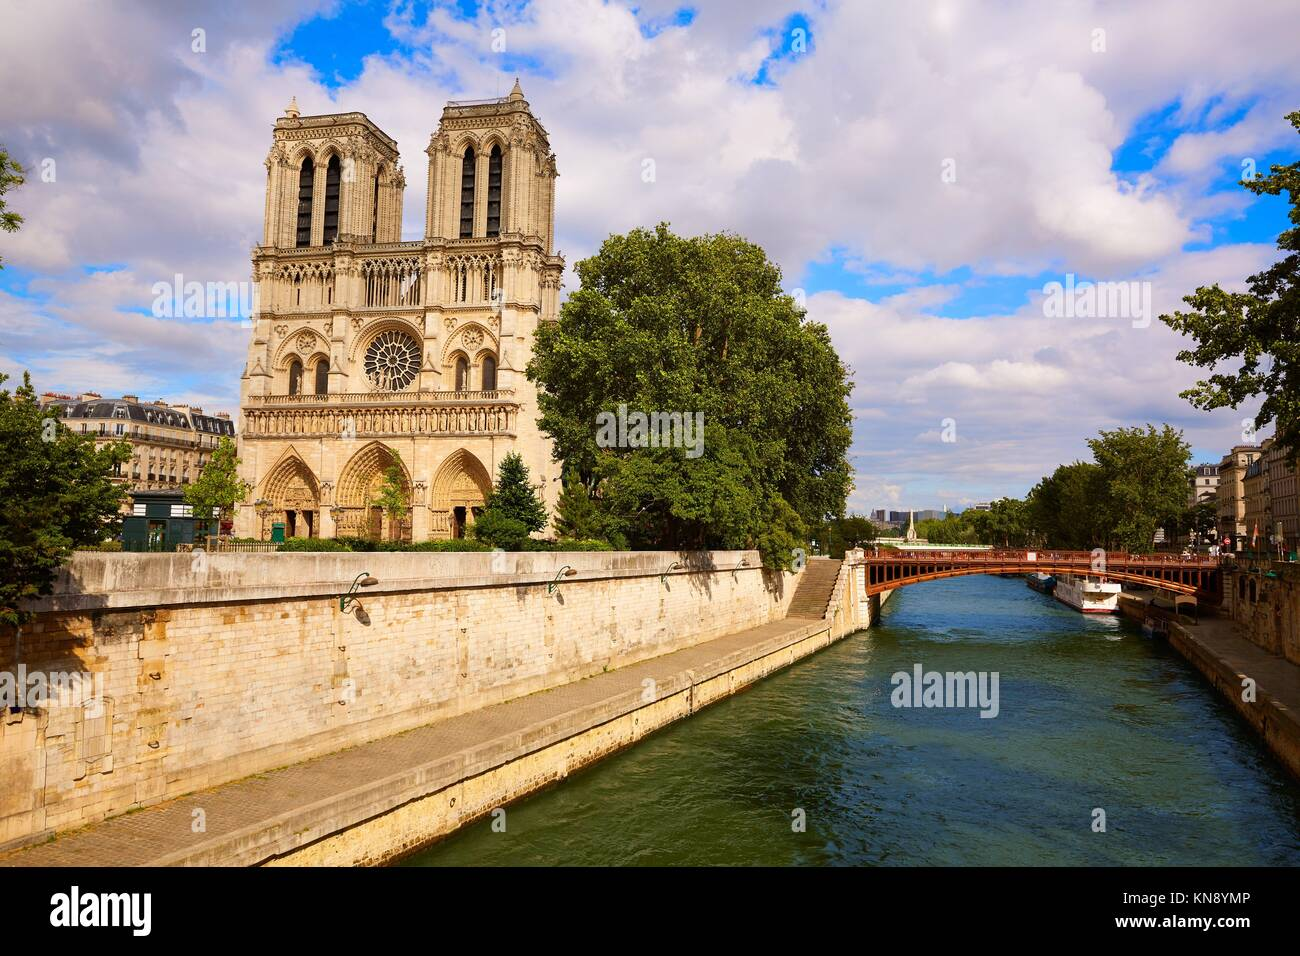 Notre Dame cathedral in Paris France French Gothic architecture. Stock Photo